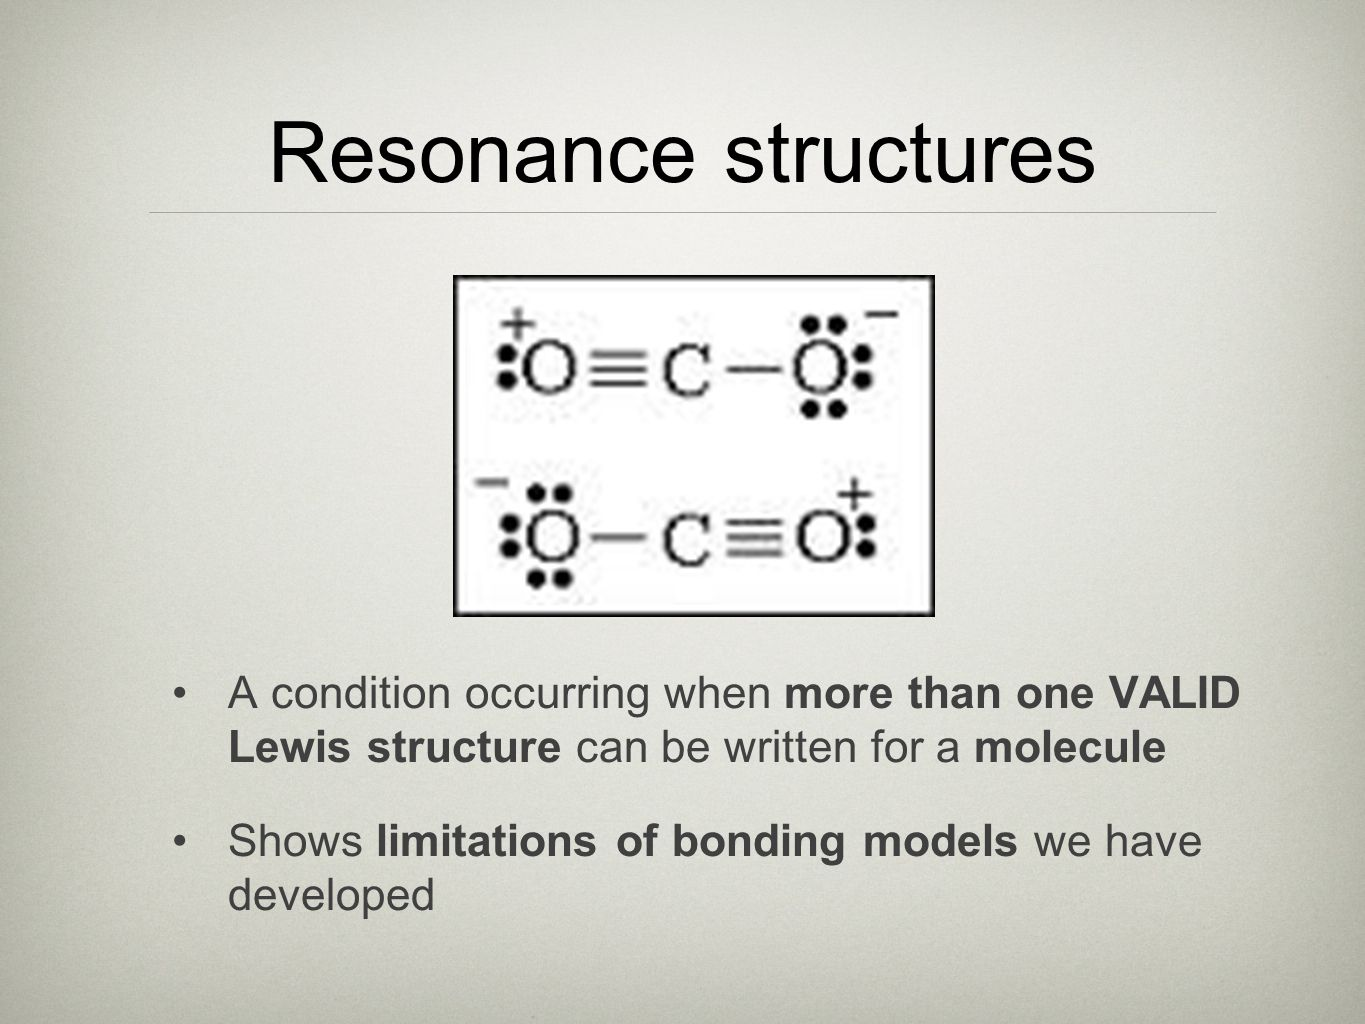 Resonance structures A condition occurring when more than one VALID Lewis structure can be written for a molecule.